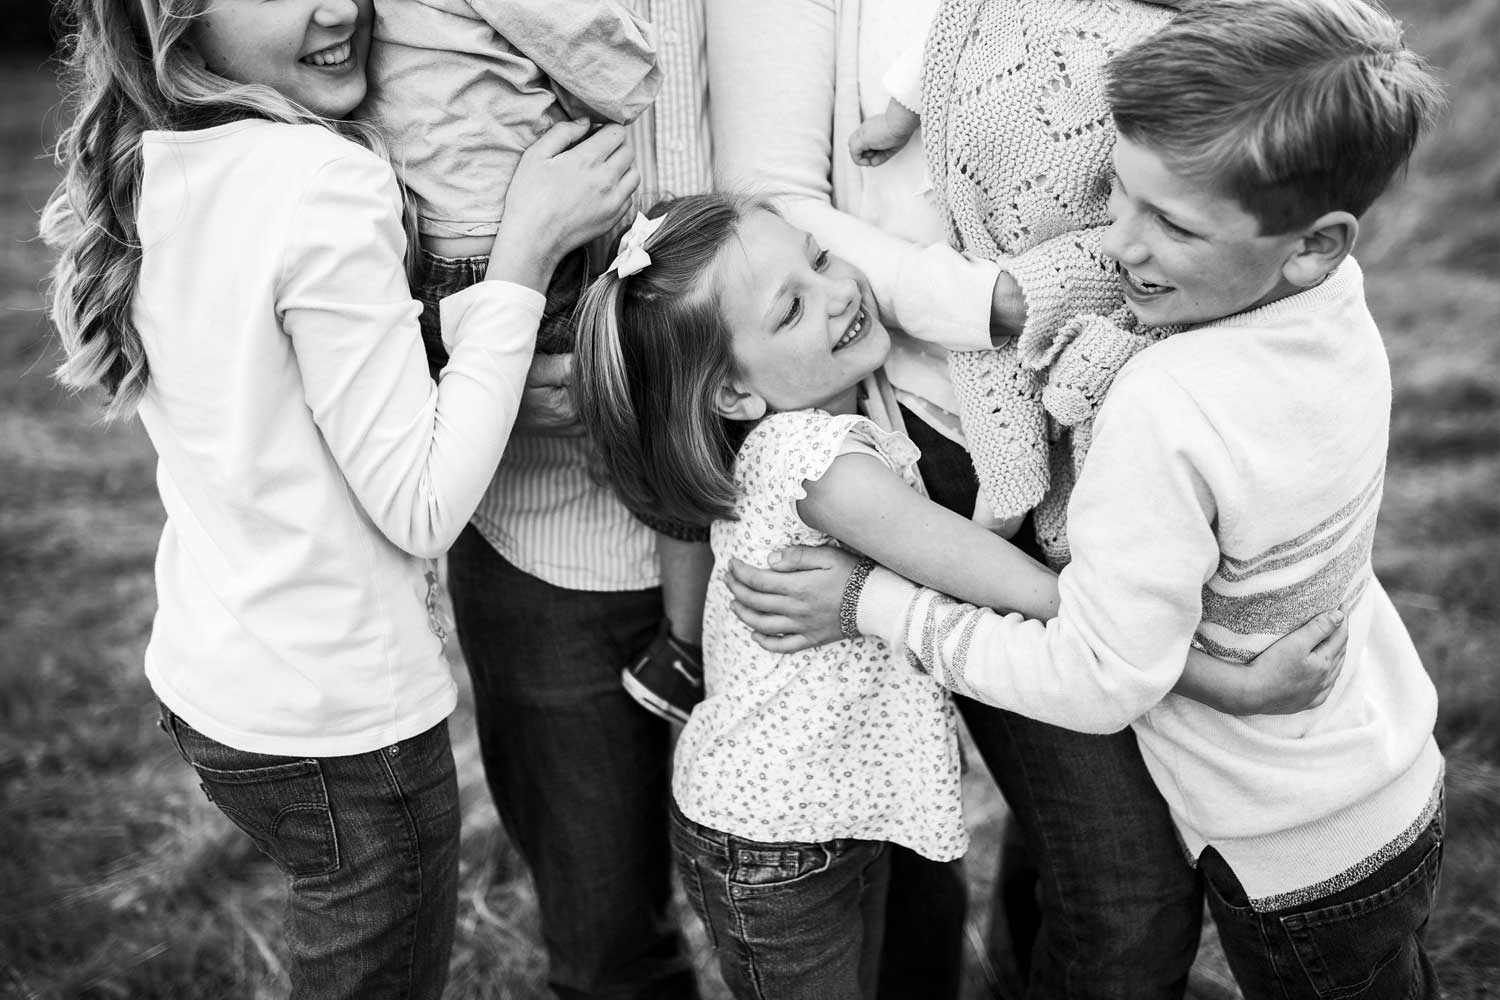 A family embraces and shows love to each other during a photo session in Roseville, California.